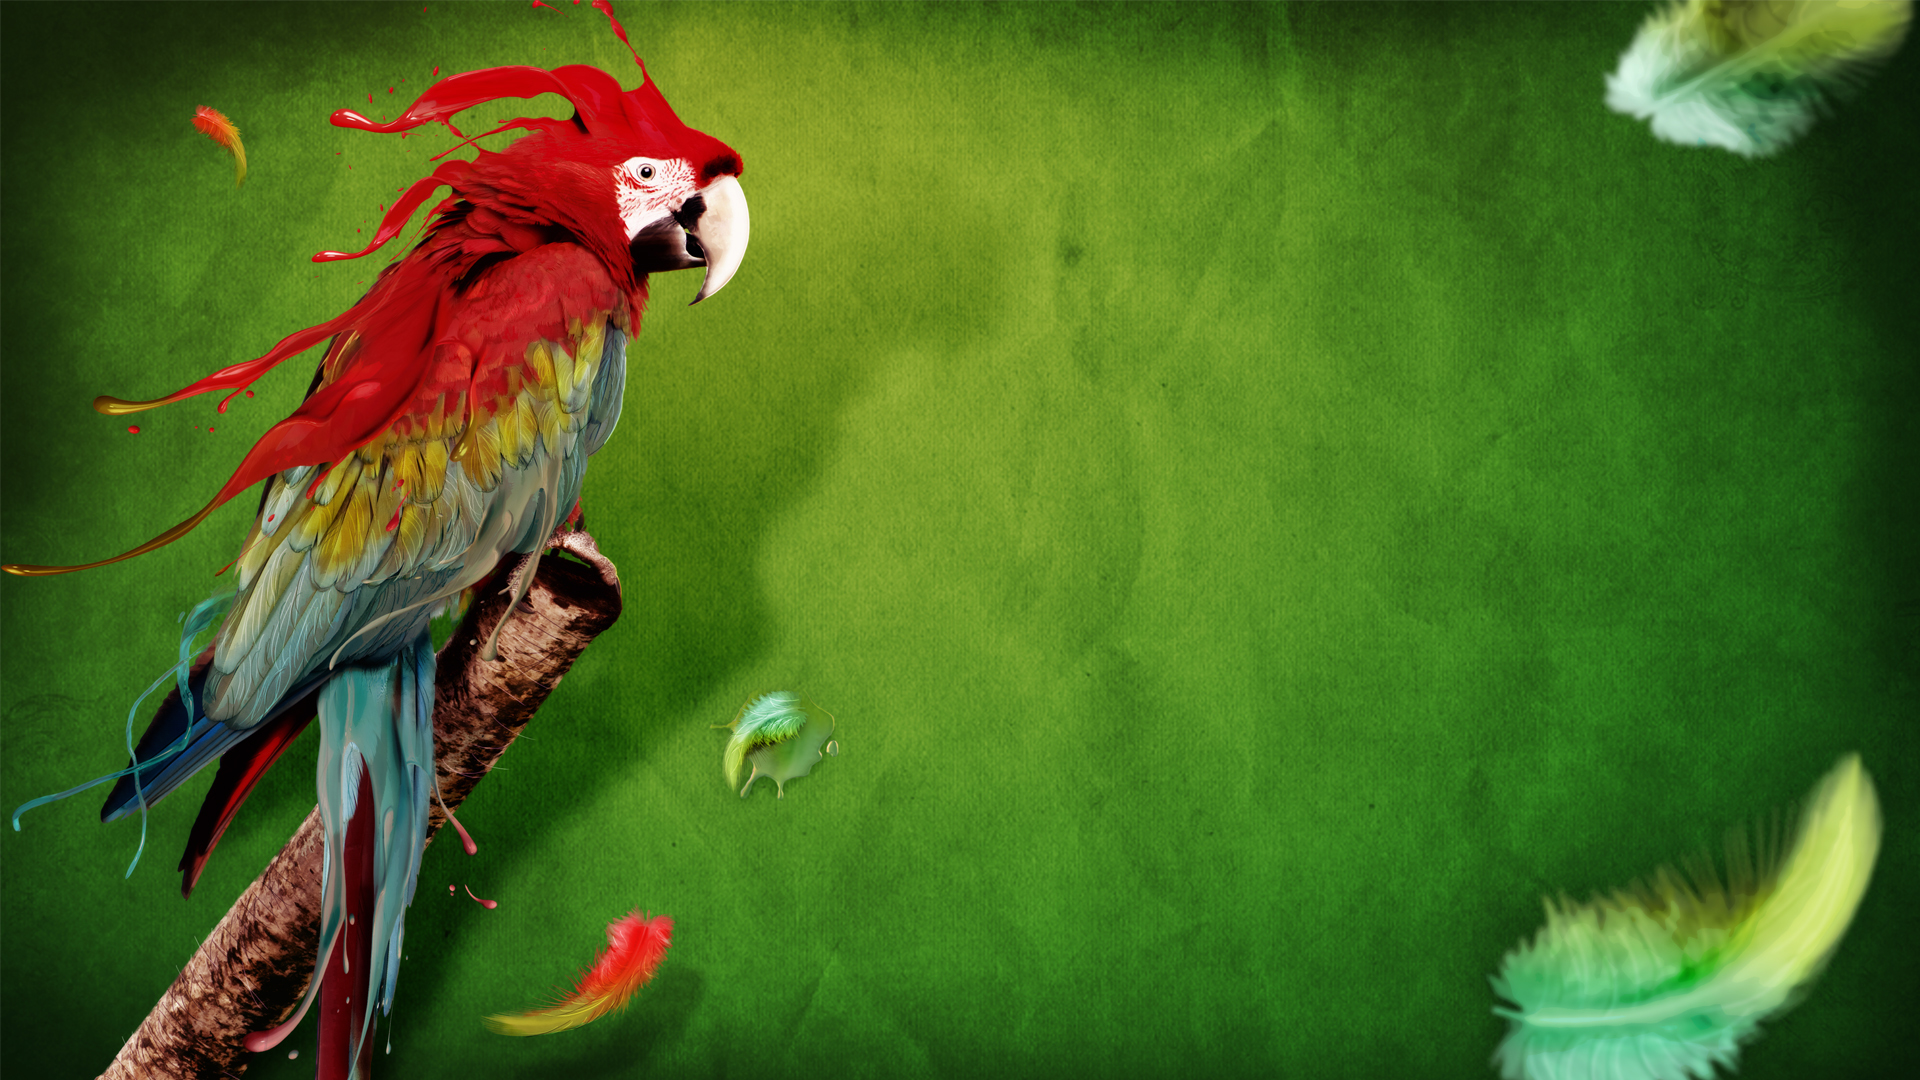 16622 download wallpaper Animals, Birds, Parrots screensavers and pictures for free